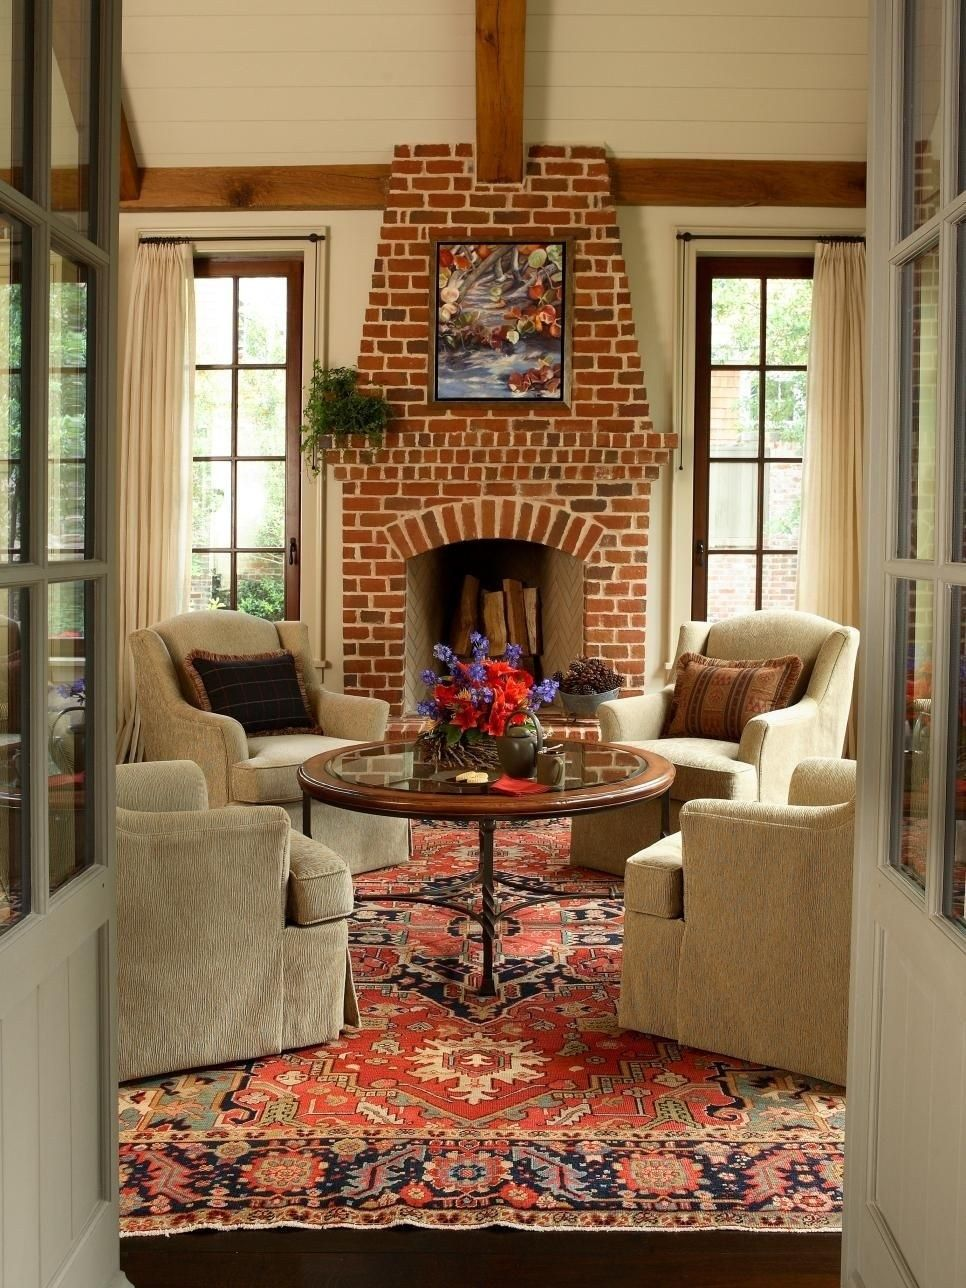 40 Unique Wall Fireplace with Red Brick | Red brick ...